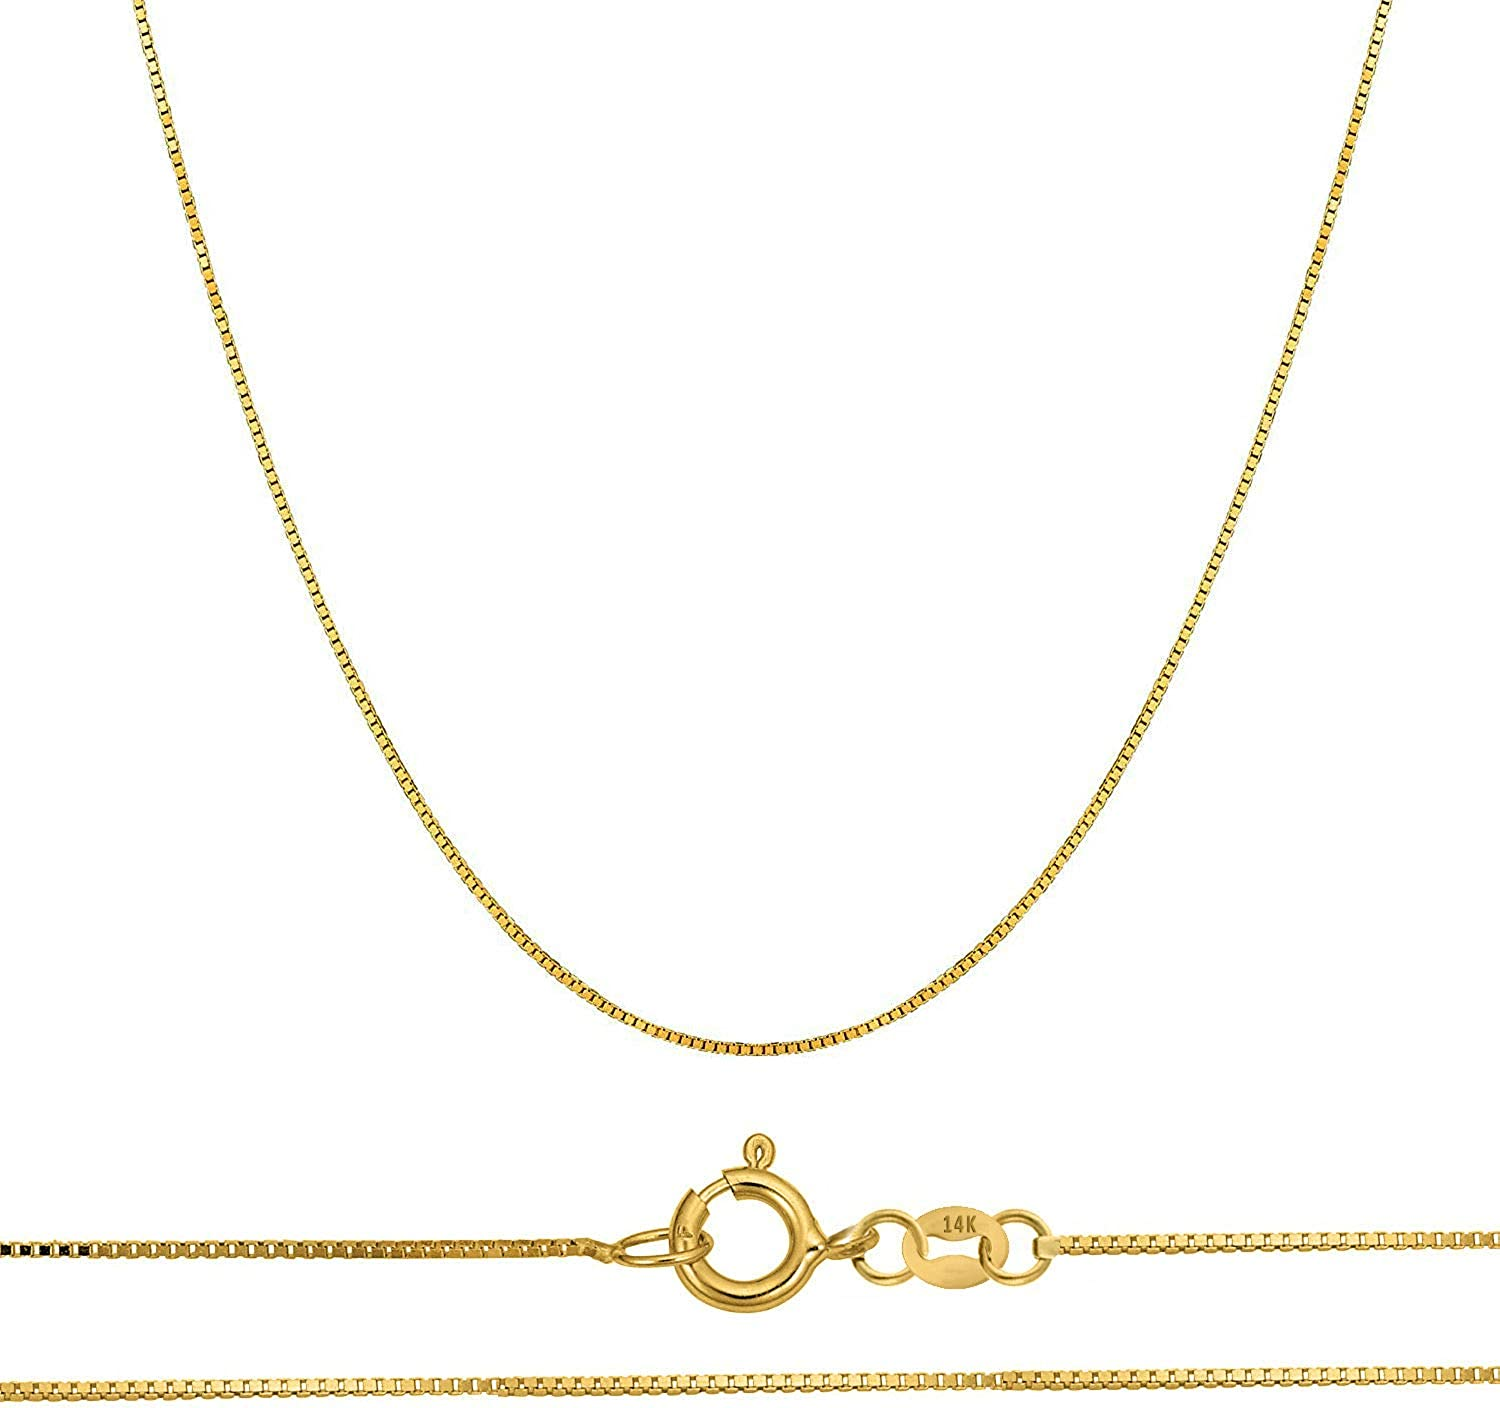 Orostar 14K Gold Chain for Men & Women in Yellow, White, and Rose Gold | Solid Thin Box Chain Necklace with 0.45mm Thickness and Size 16-20 inches